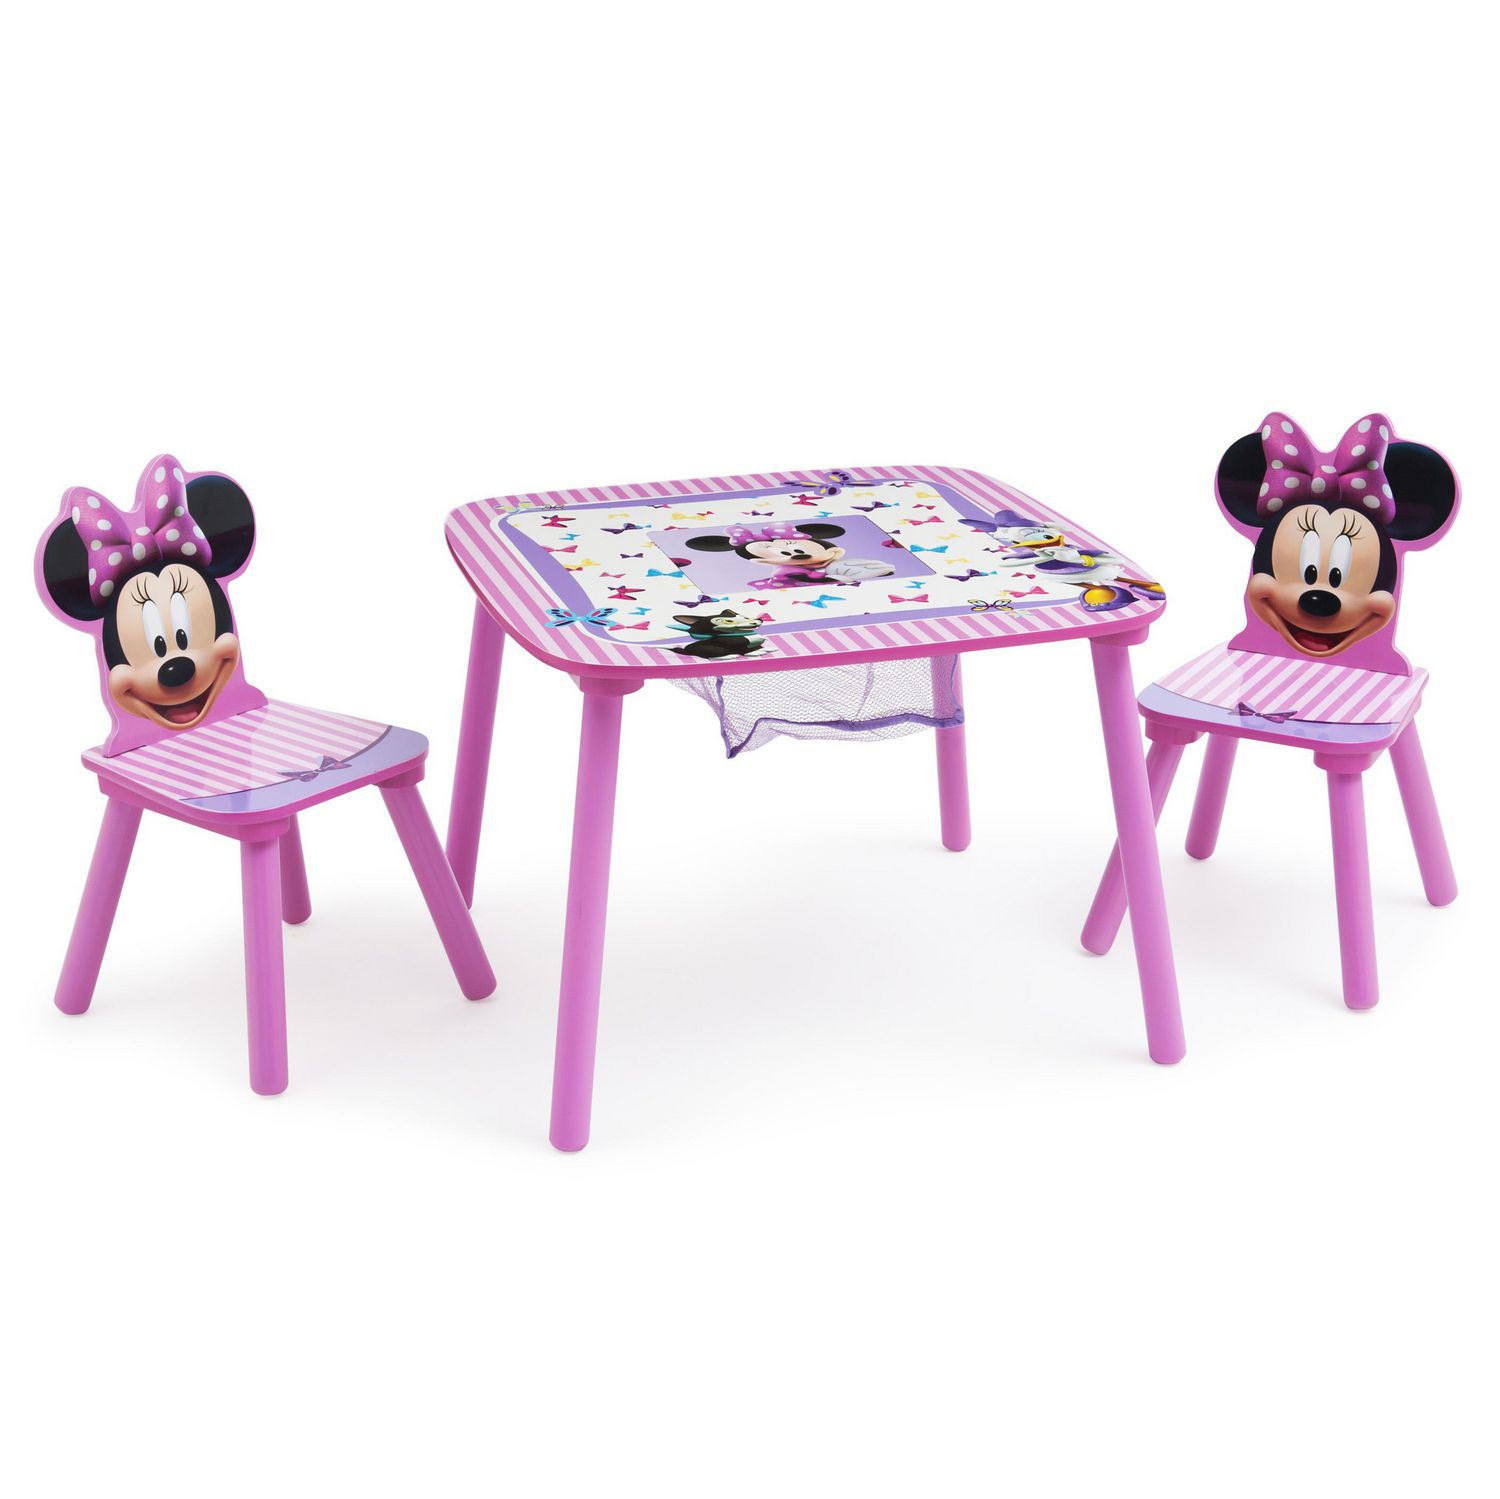 ensemble de table et chaises minnie mouse de disney avec rangement par delta children